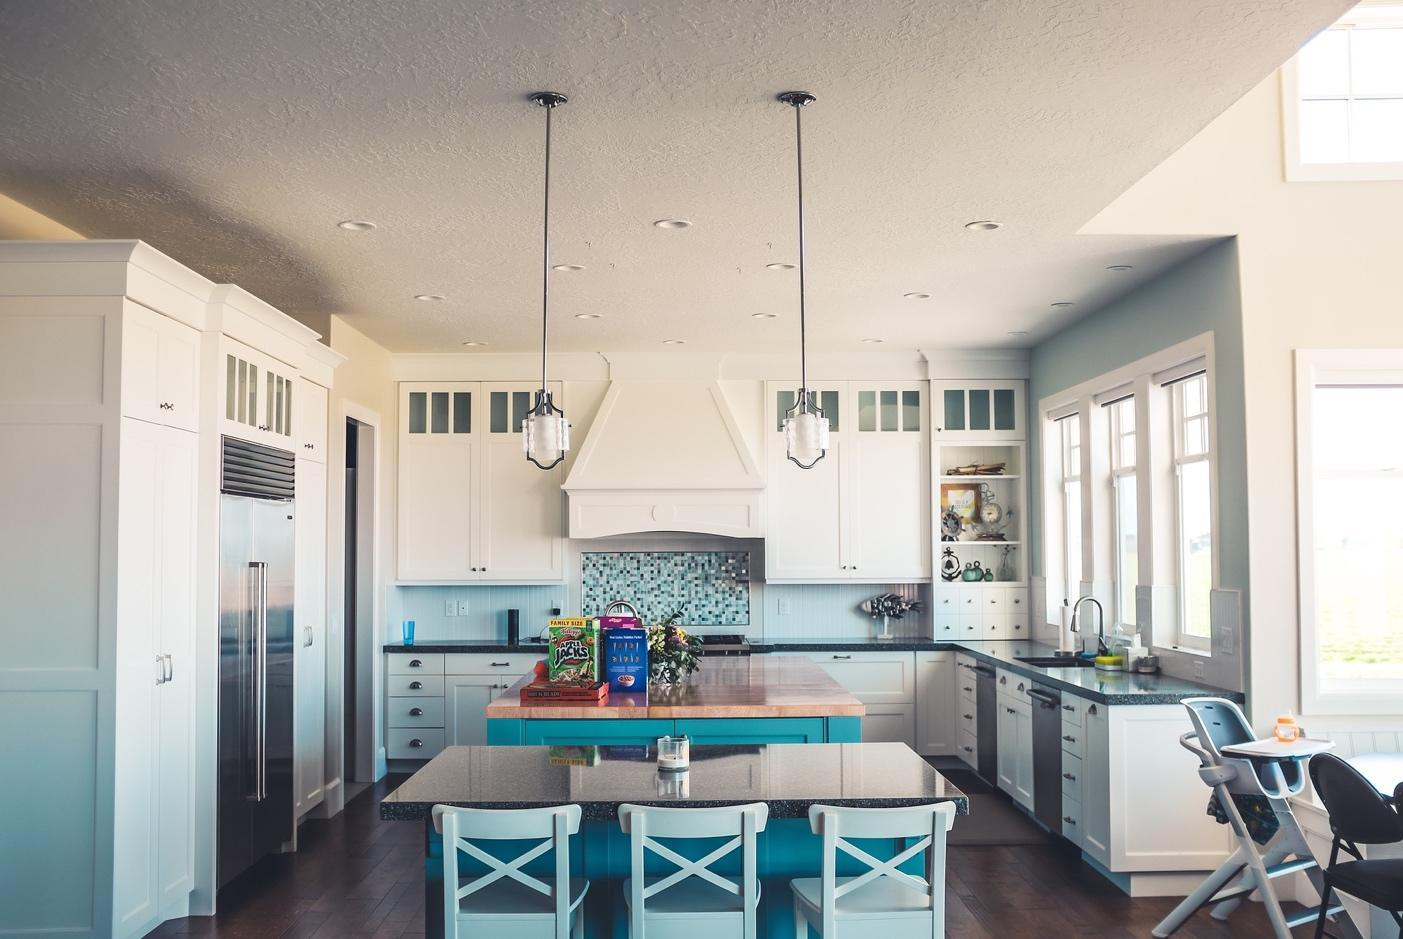 Scrumptious Style - 7 Simple Ways to Make Your Kitchen Beautiful